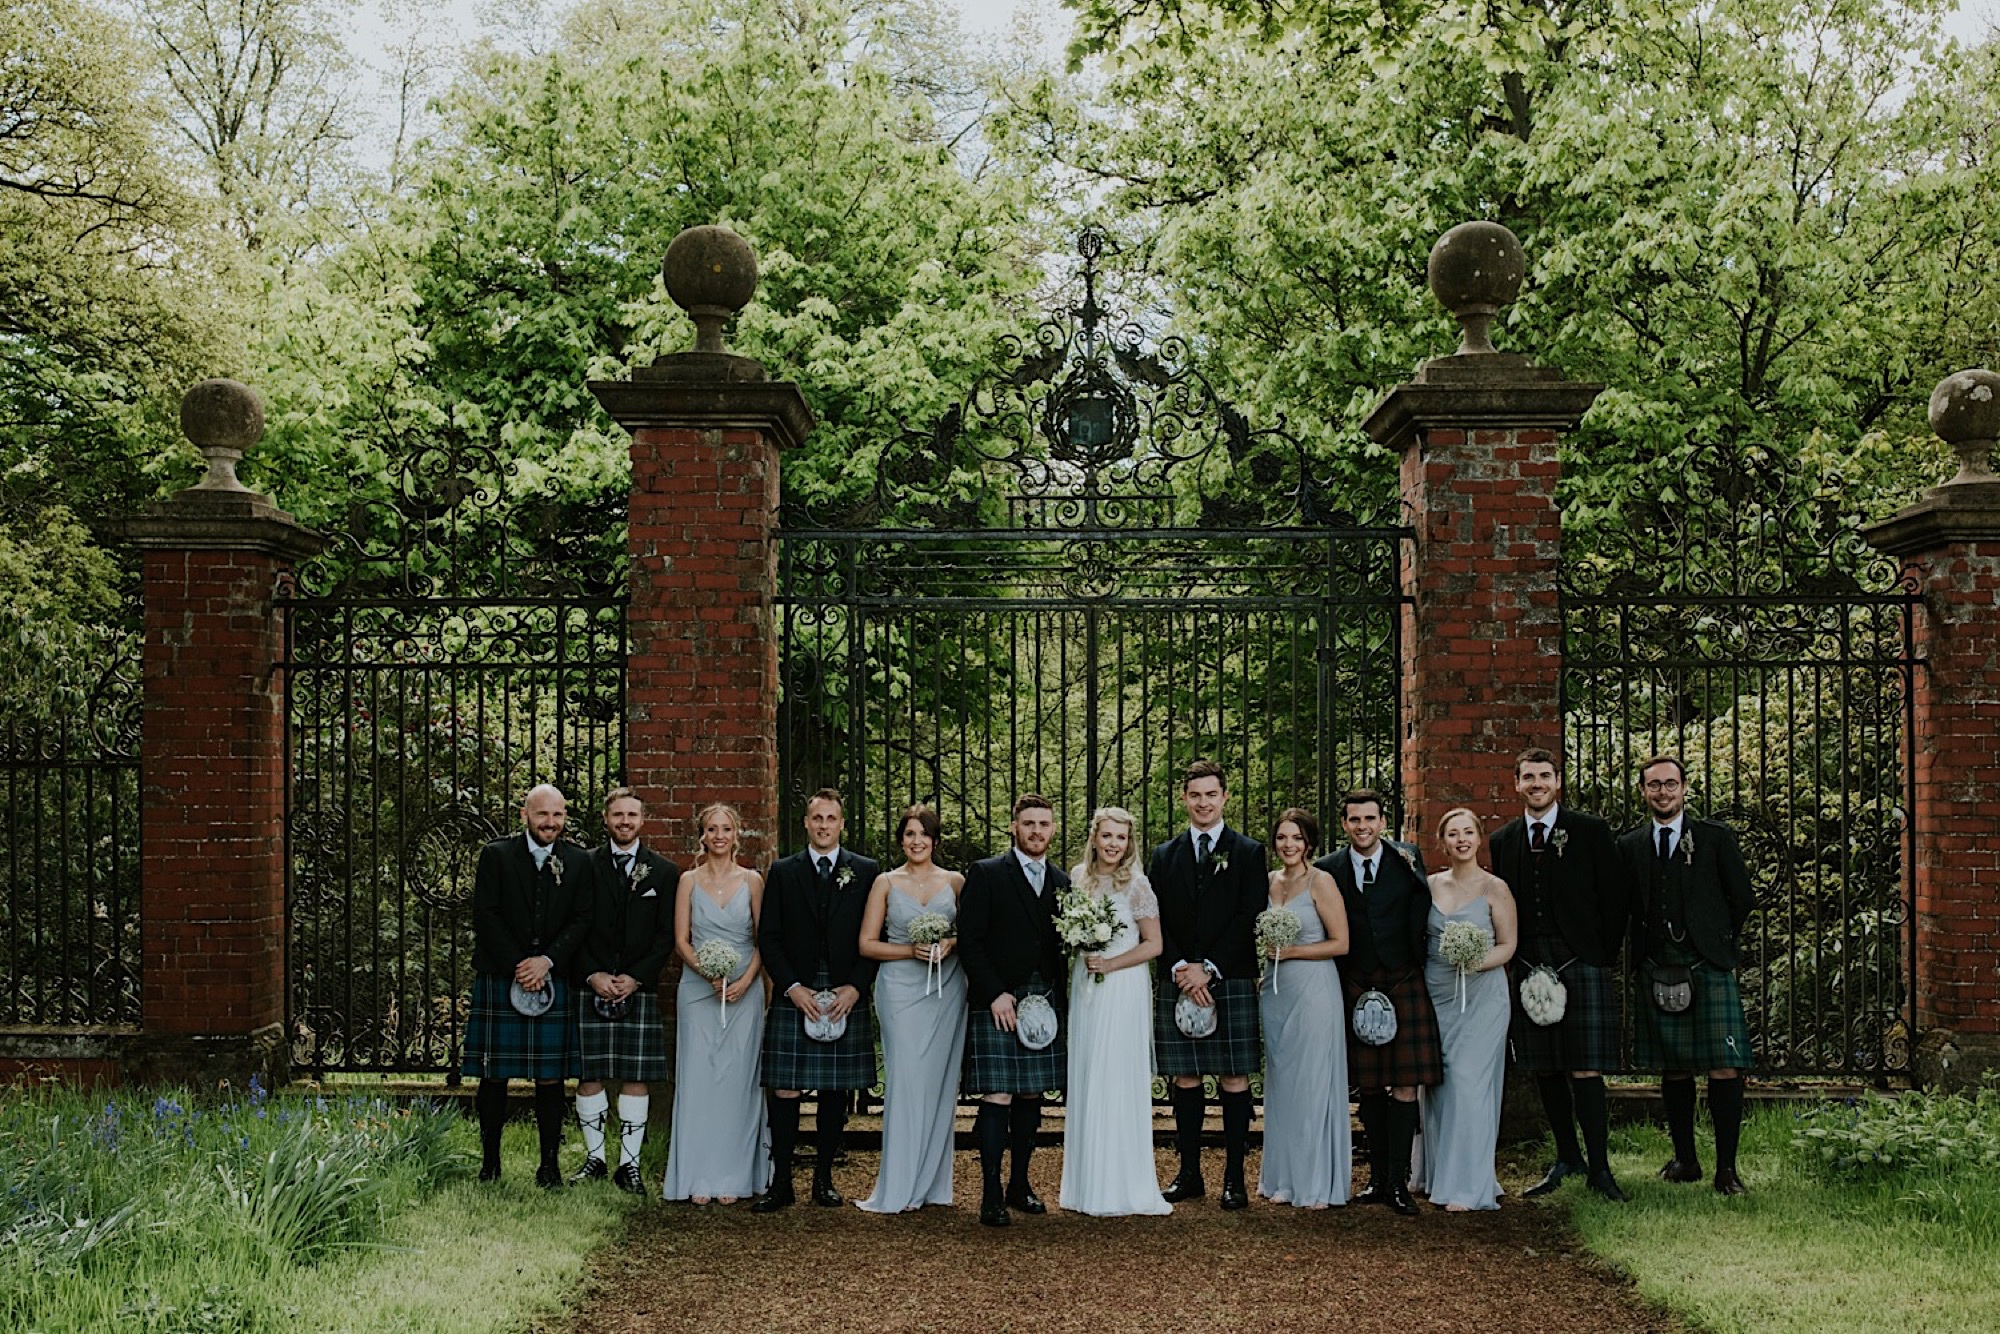 outdoor summer wedding ceremony at kirknewton stables edinburgh rustic barn venue